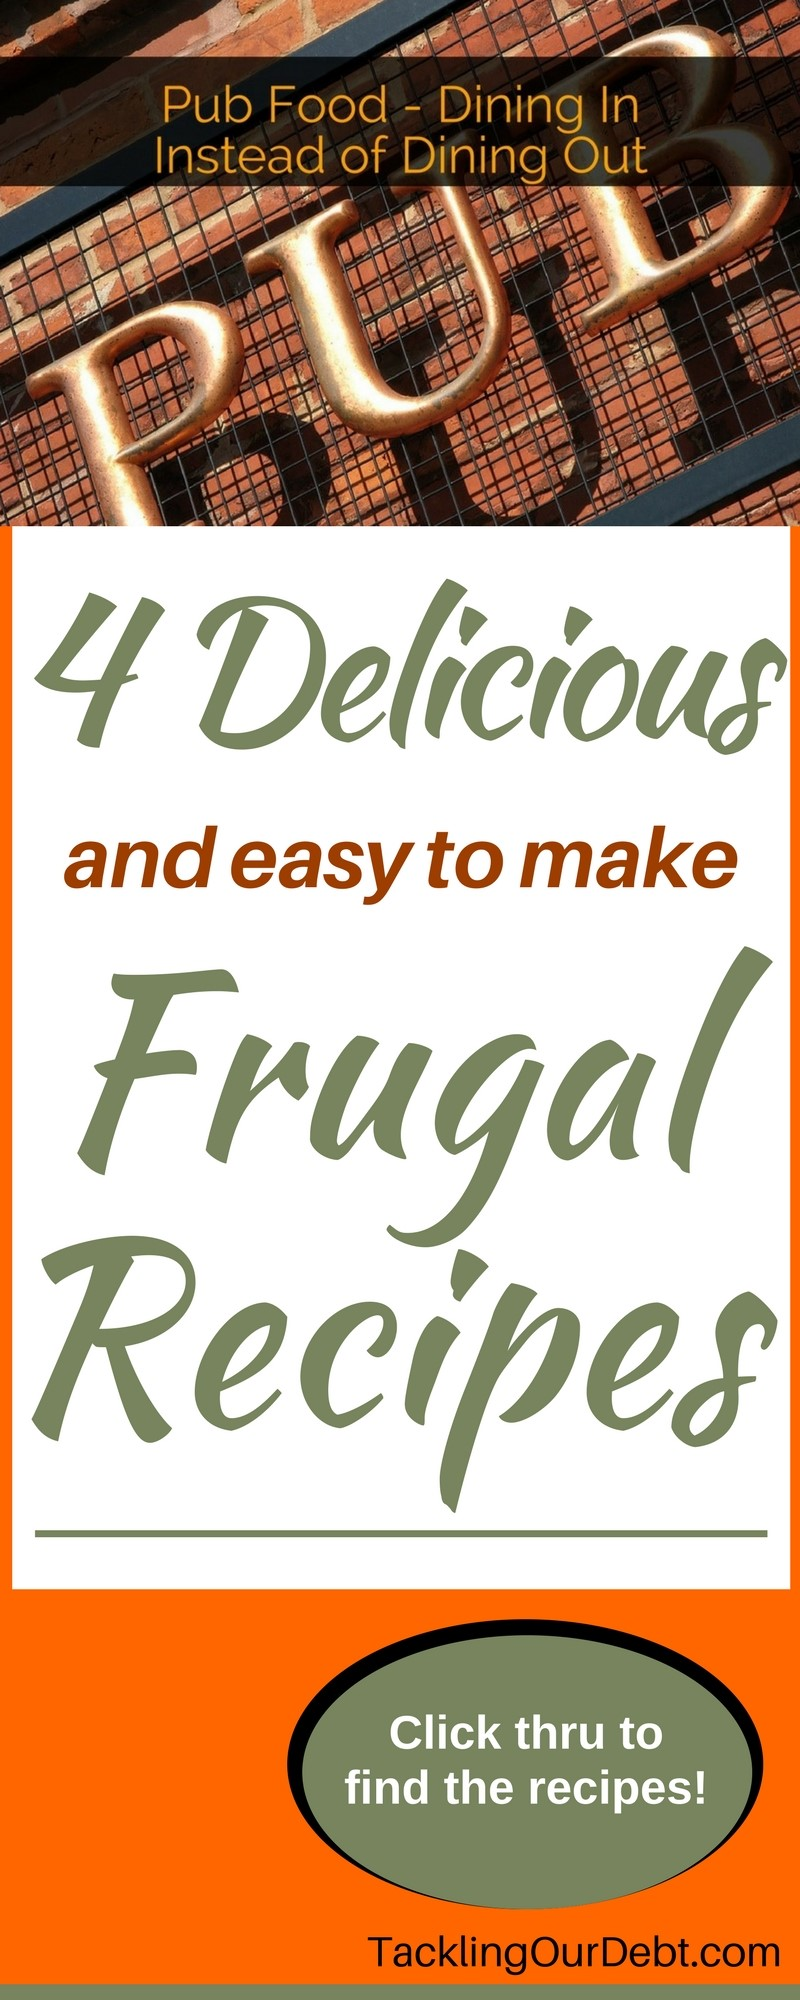 Save money by dining in while still having fun, when you make these four delicious and easy frugal recipes that the whole family will love. Click thru to find the recipes!